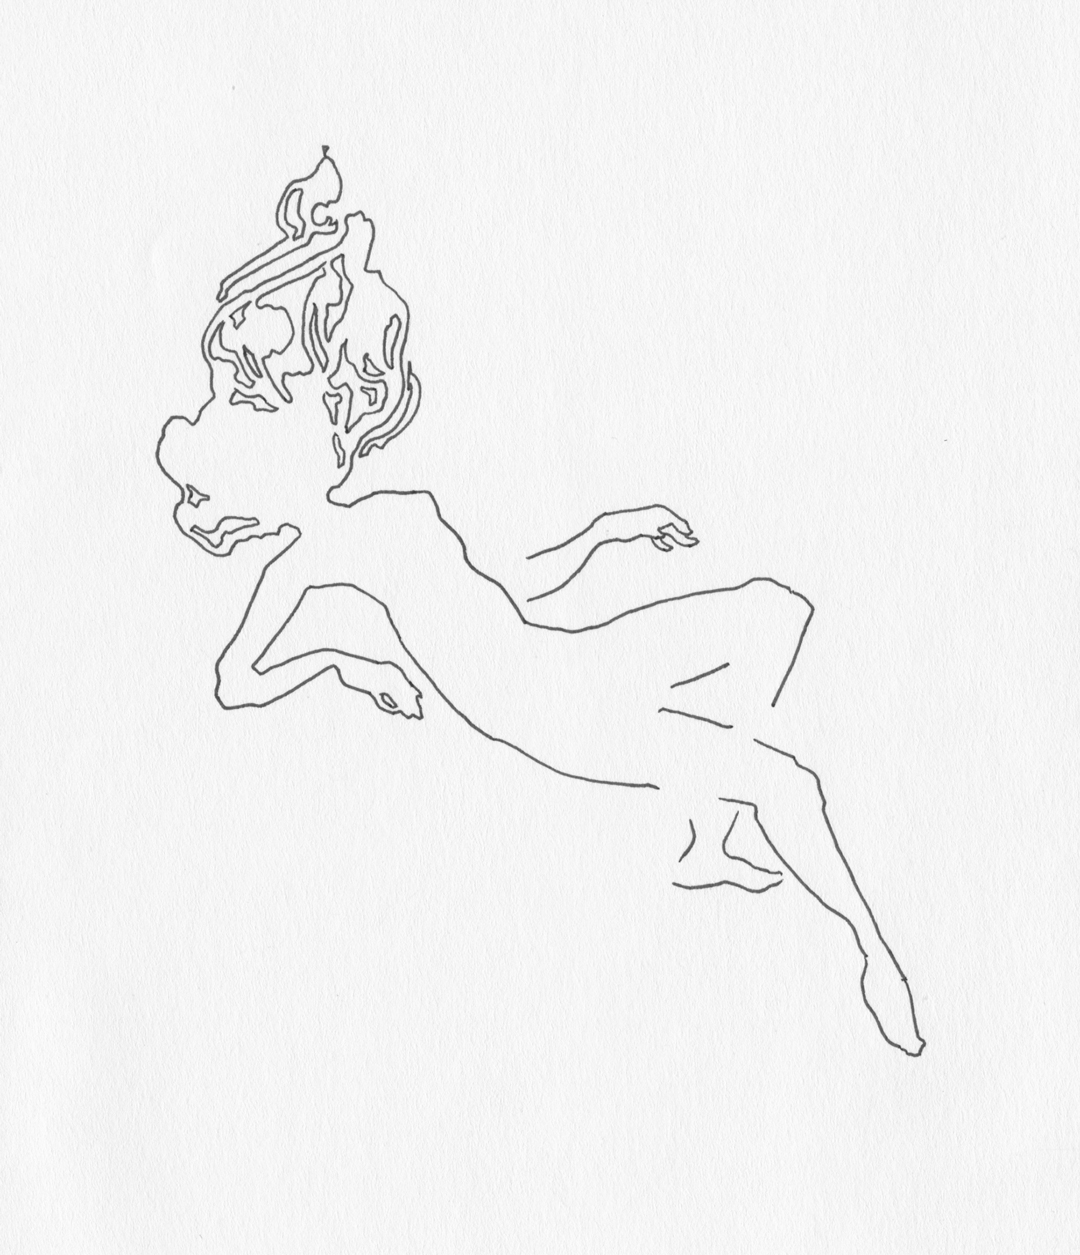 """Falling,"" Art by Laura Dreyer, drawing in pen."